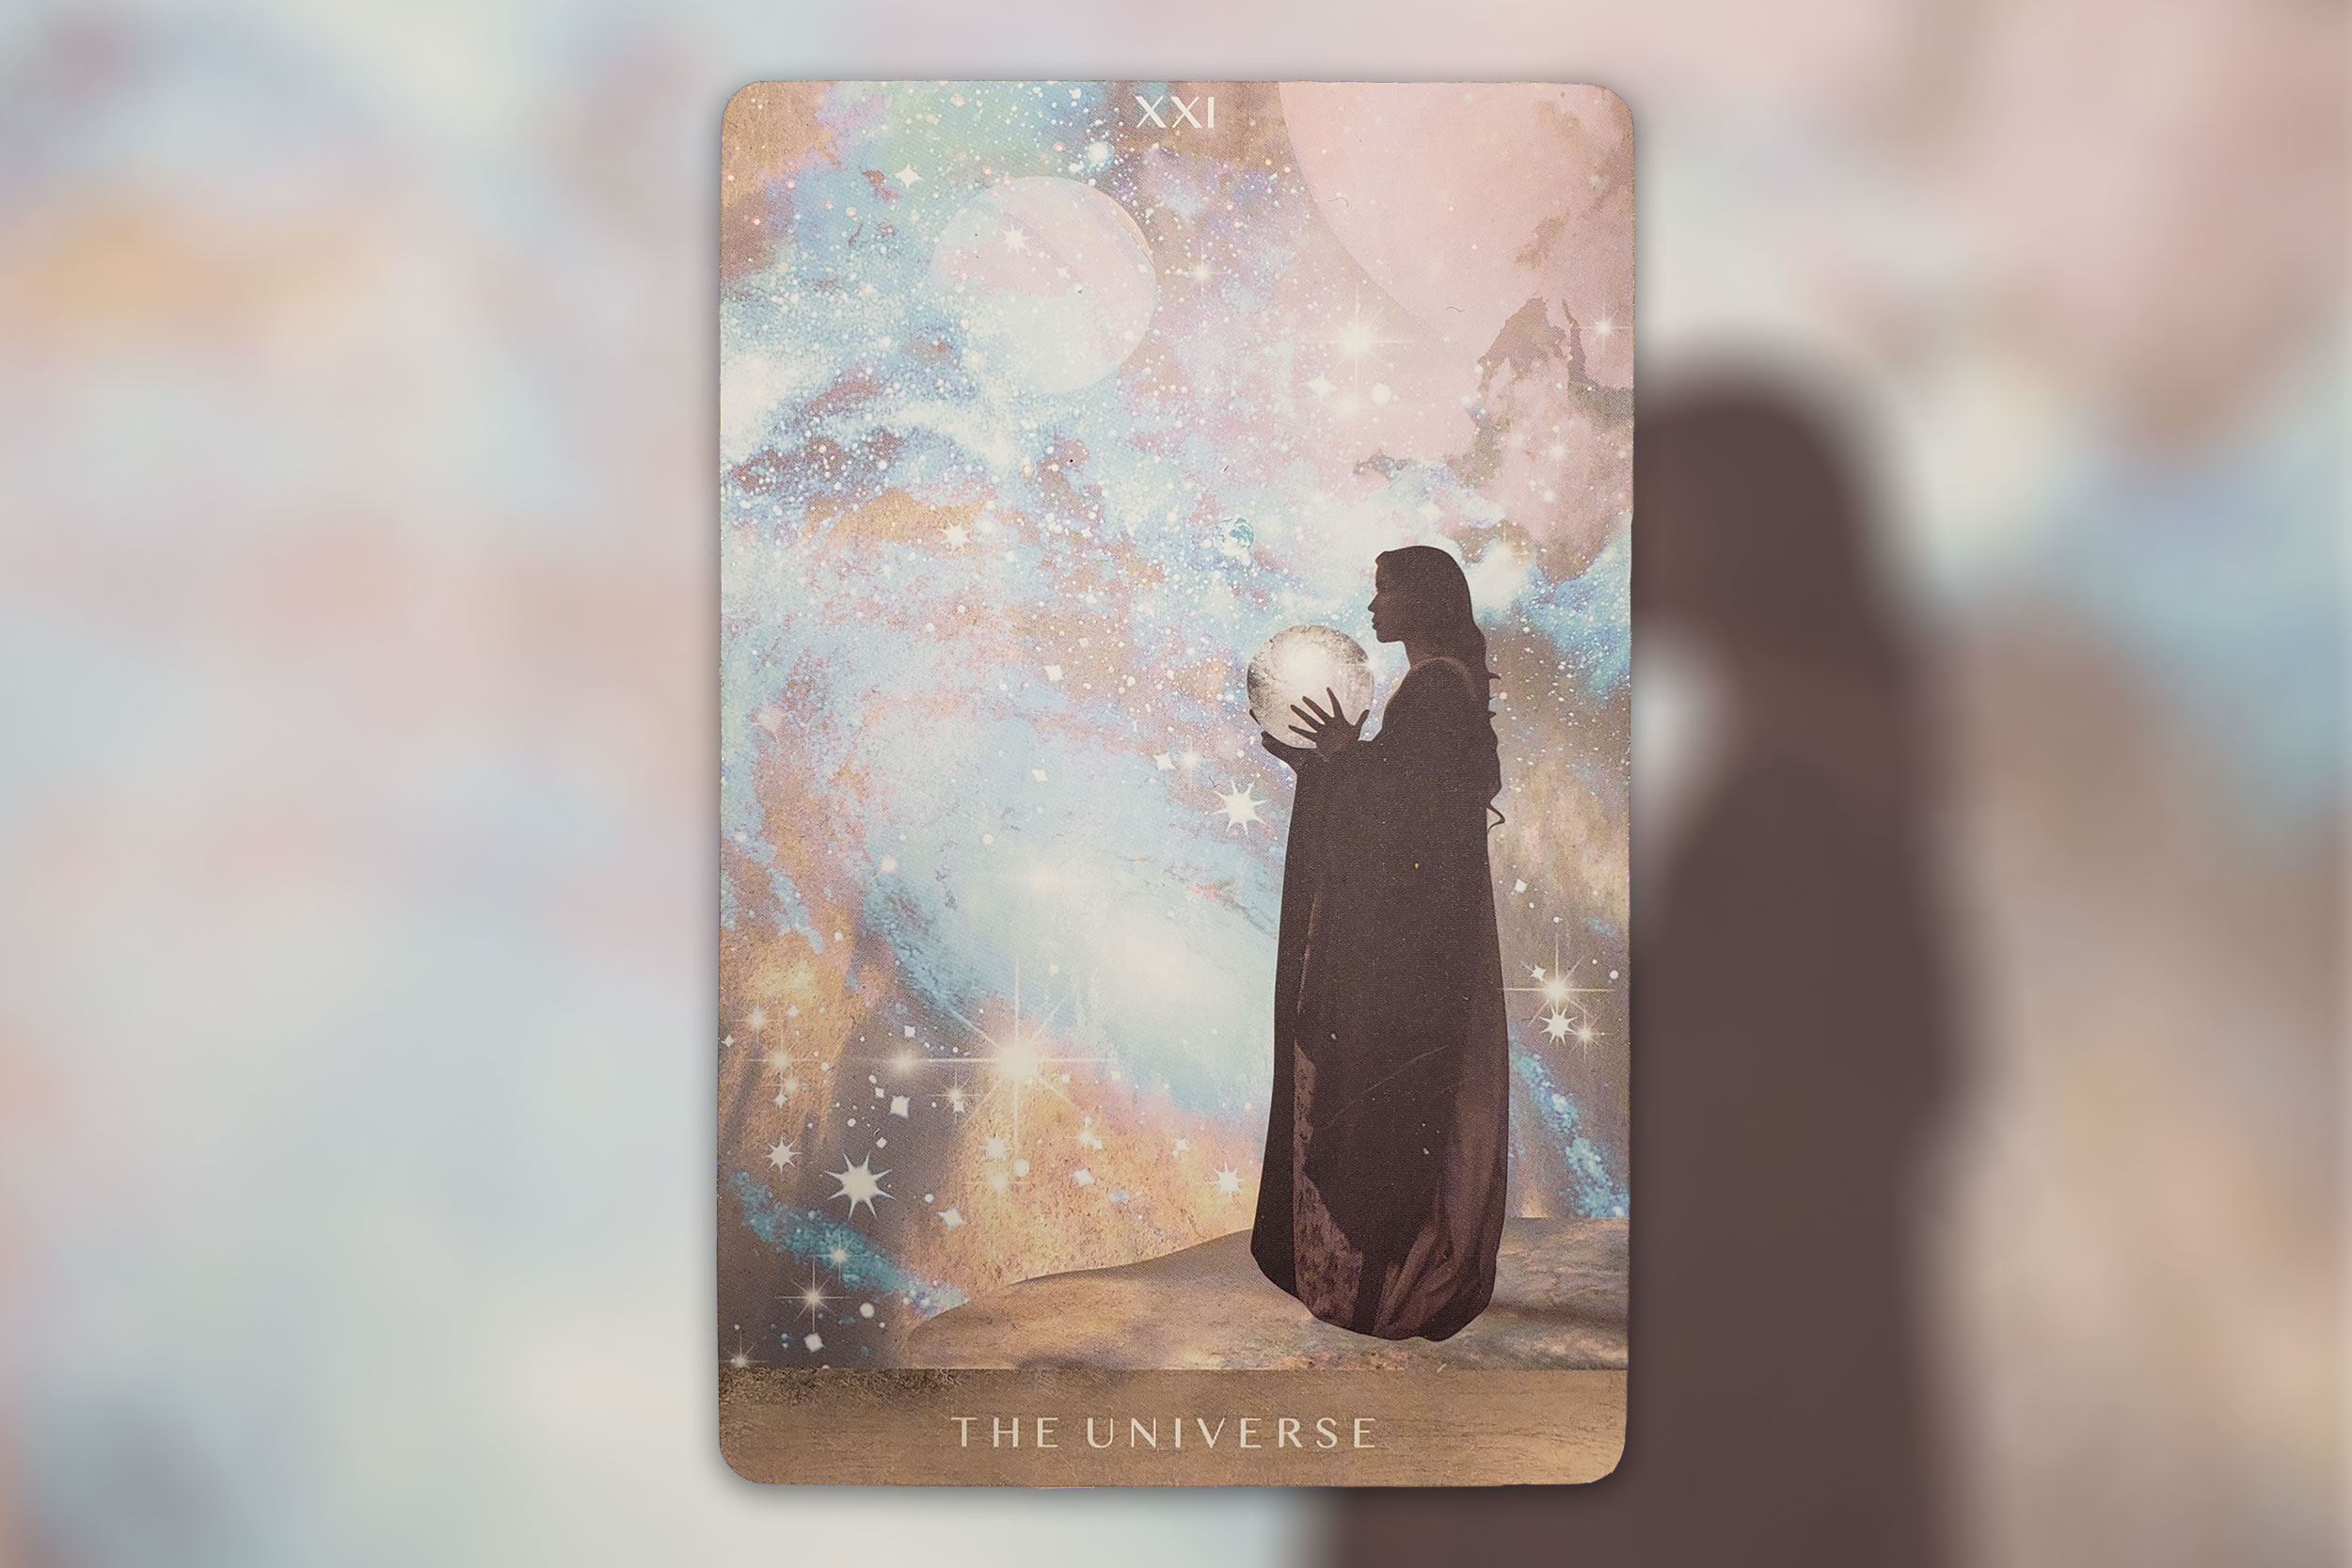 From The Moonchild Tarot by Danielle Noel. Used with permission.